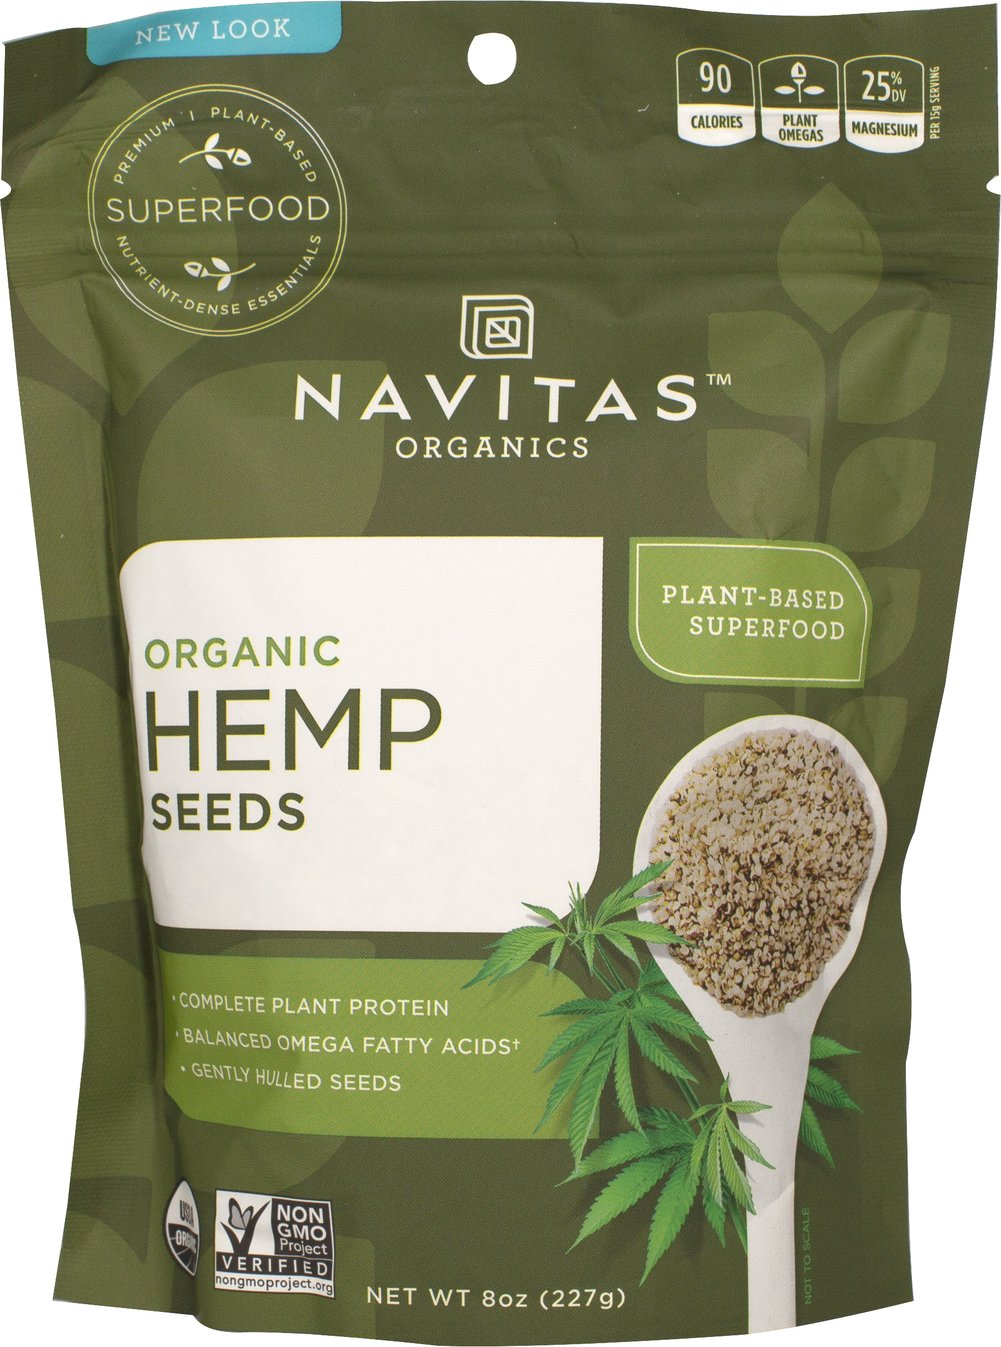 Organic Raw Shelled Hemp Seeds Thumbnail Alternate Bottle View